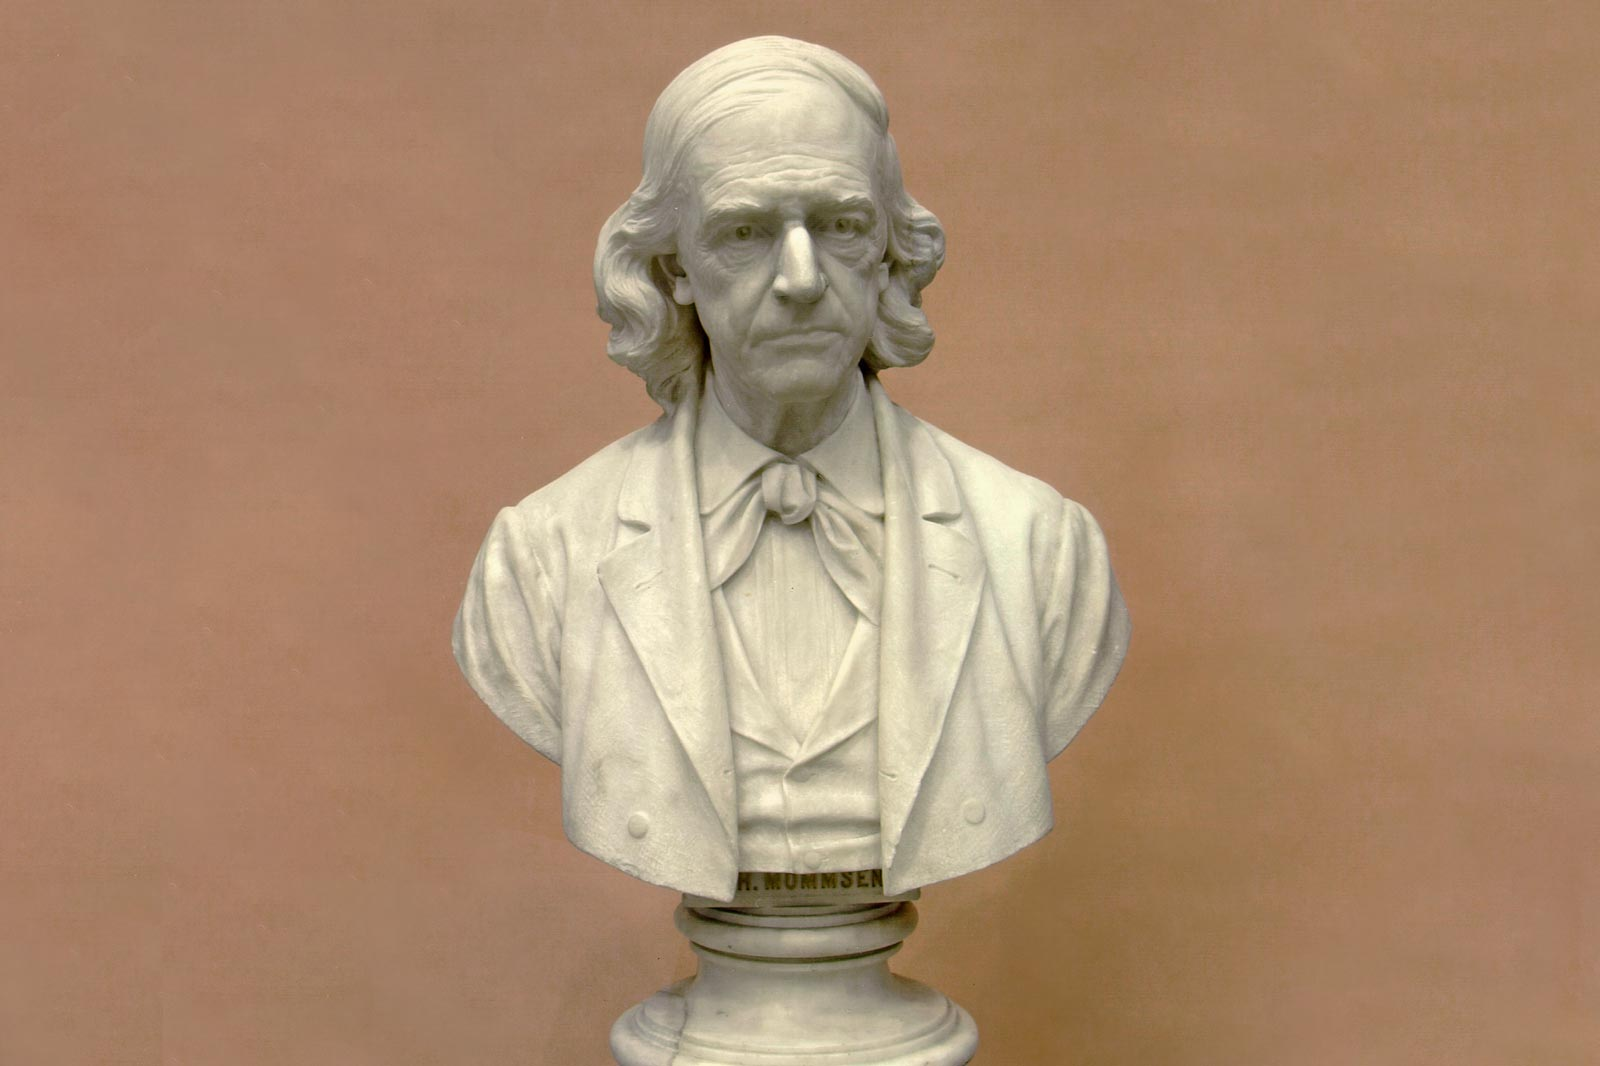 white marble bust of an older man, more precisely of Theodor Mommsen